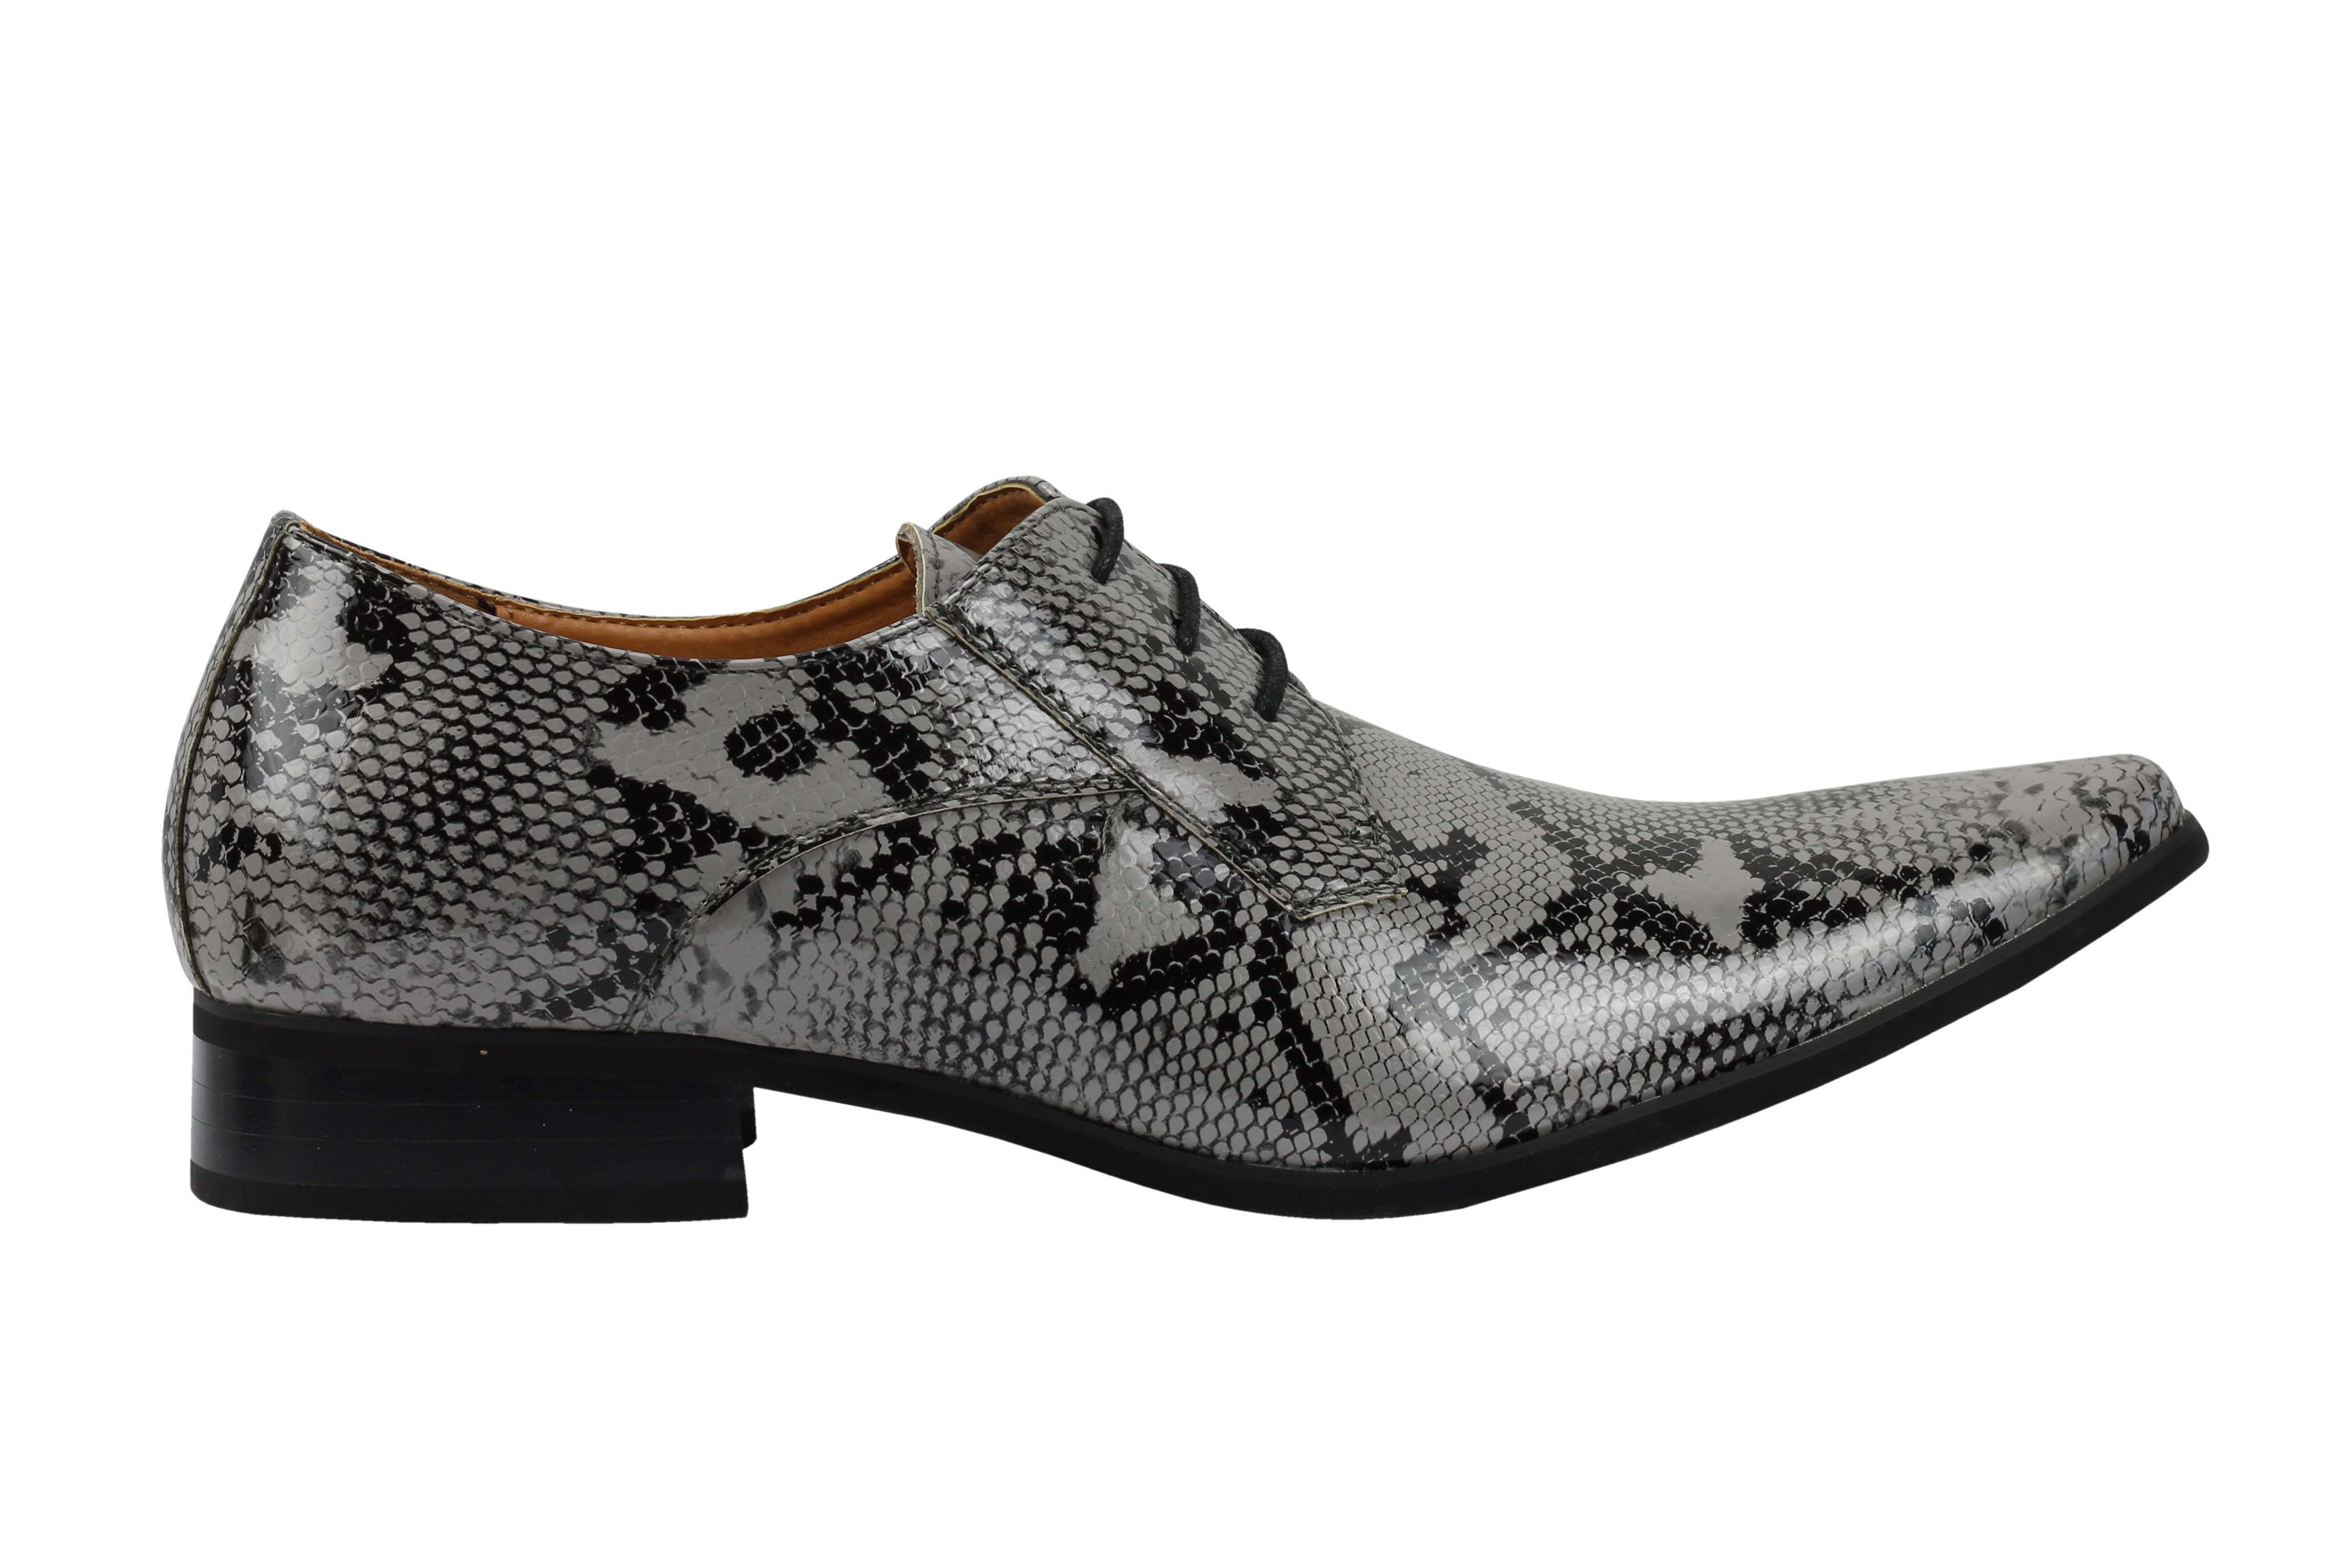 Mens-Leather-Lined-Snake-Skin-Print-Shiny-Patent-Leather-Smart-Party-Retro-Shoes thumbnail 16